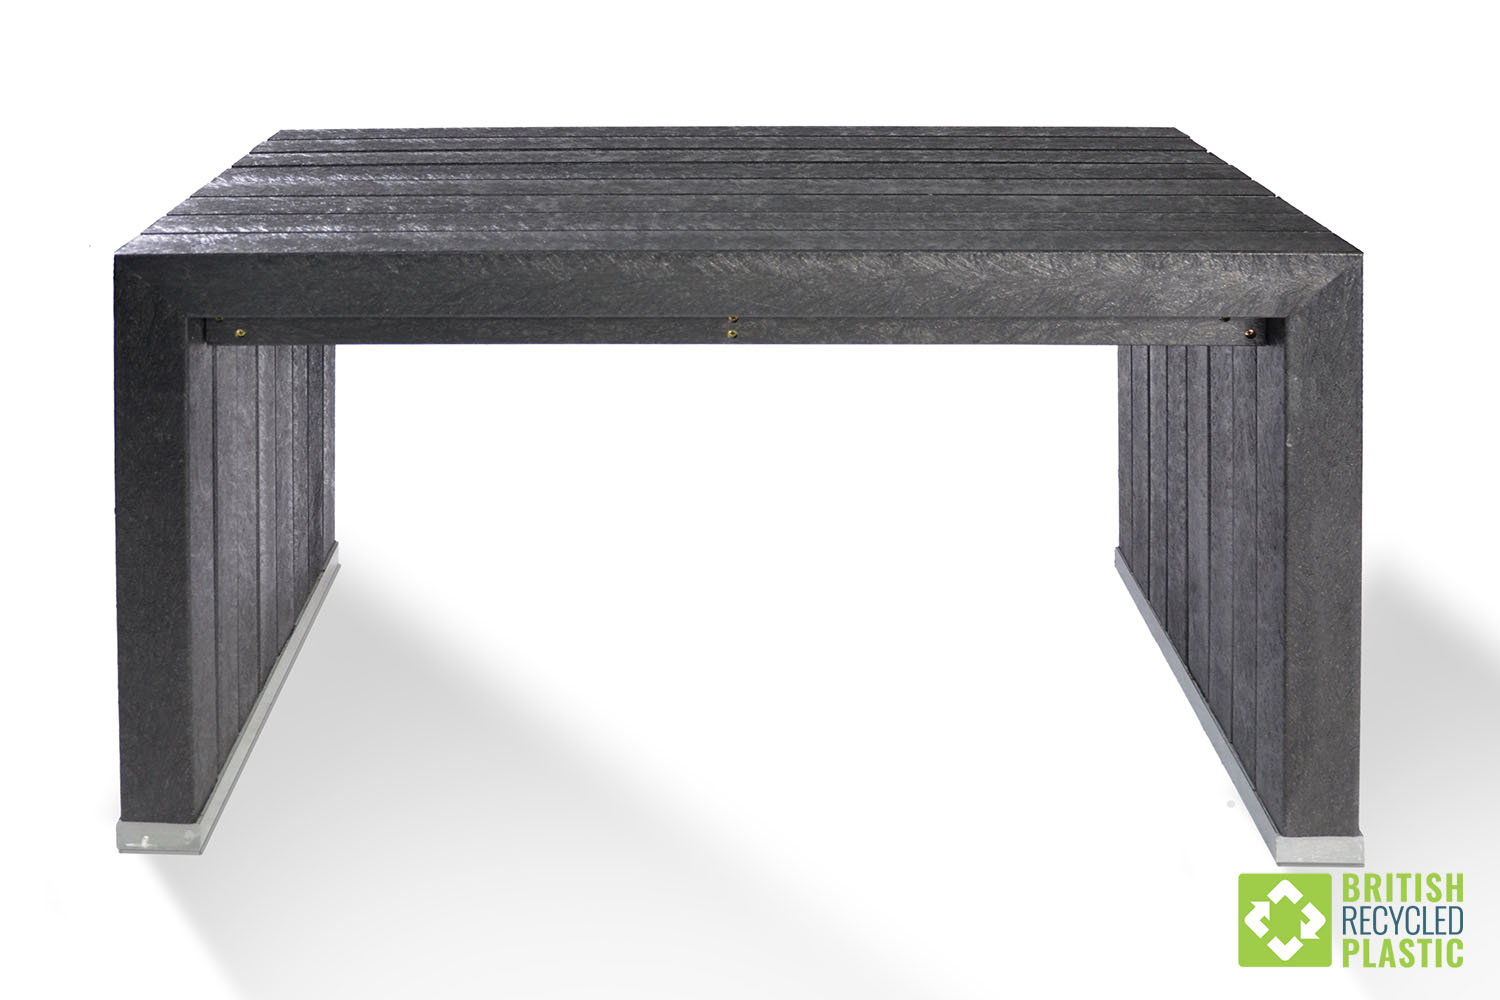 The robust Harrogate garden furniture set is made from British Recycled Plastic and comes with a 25 year guarantee